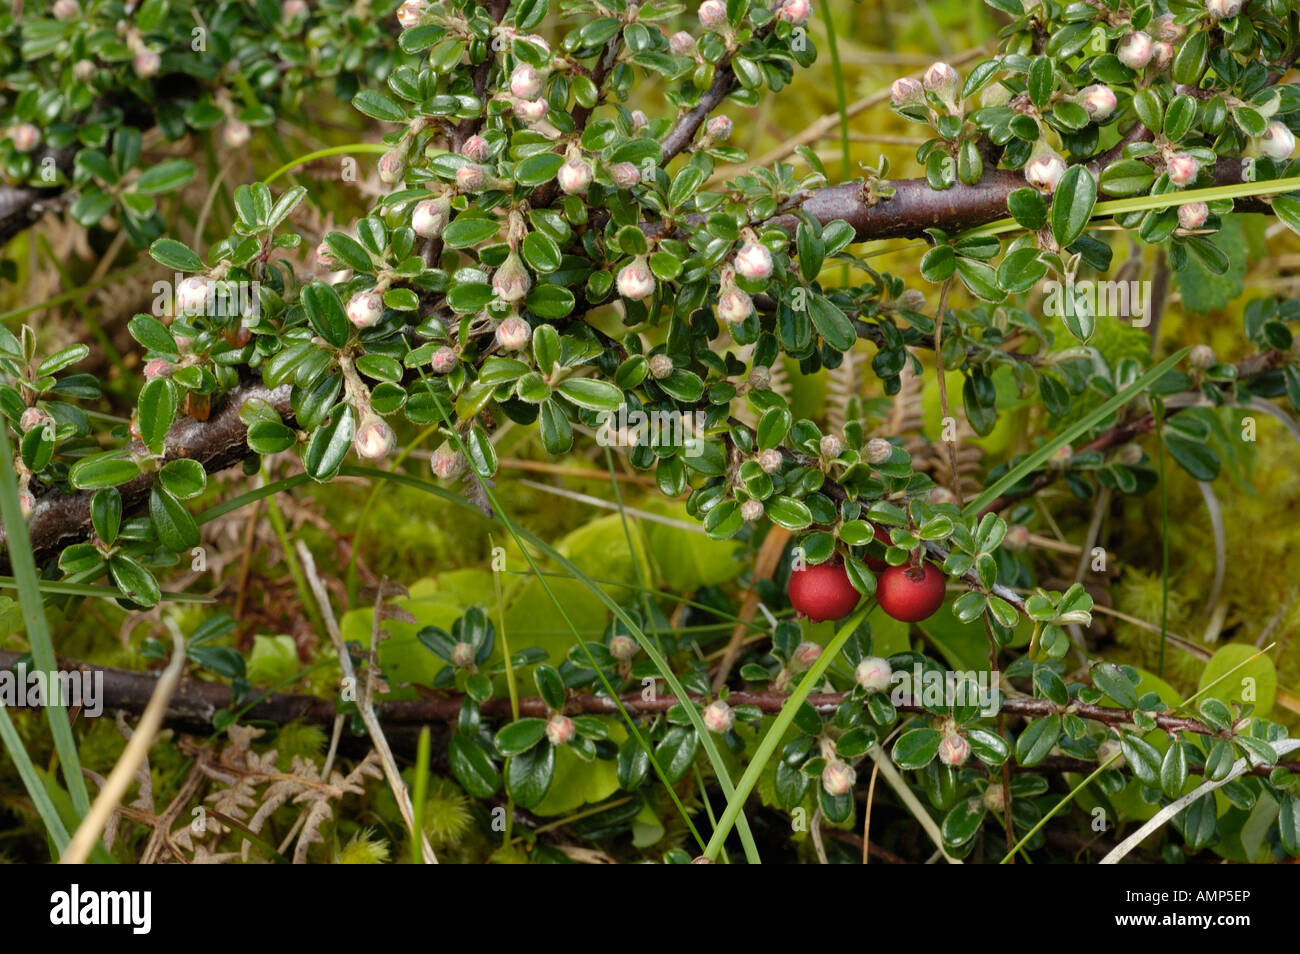 Entire leaved Cotoneaster, Cotoneaster integrifolius - Stock Image